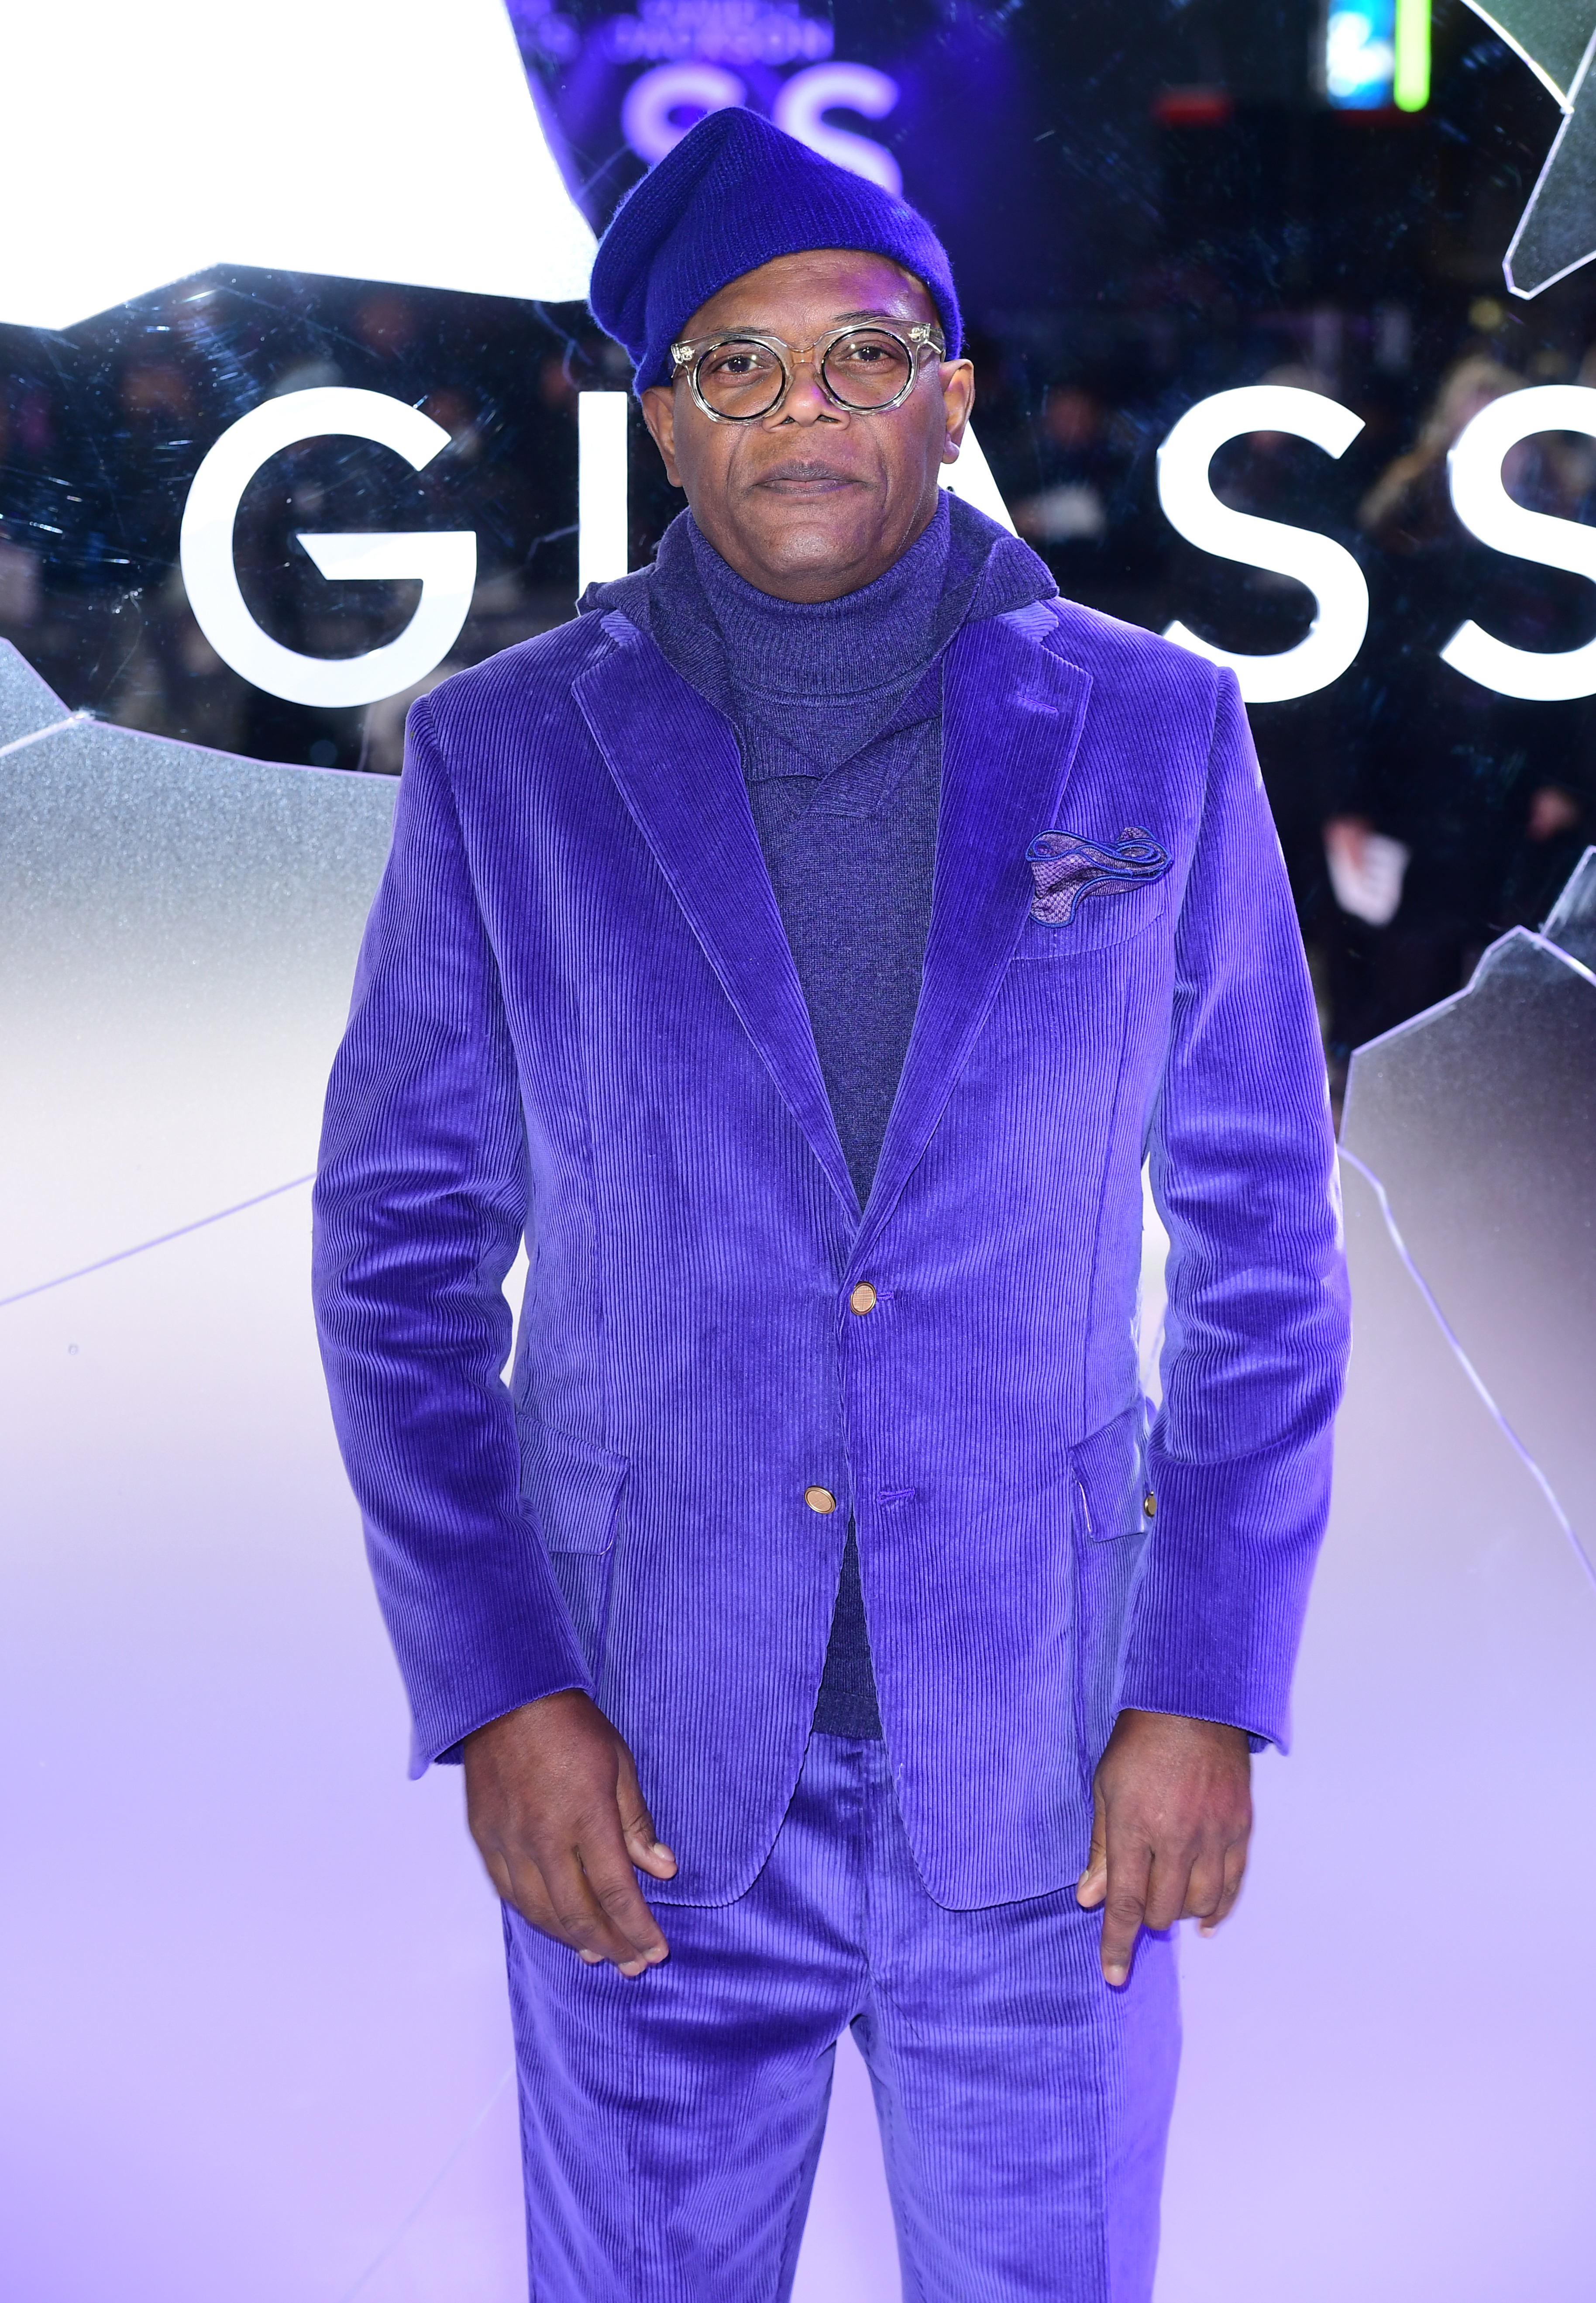 Samuel L. Jackson would be well up for a part in Luther or Peaky Blinders. Credit: PA Images